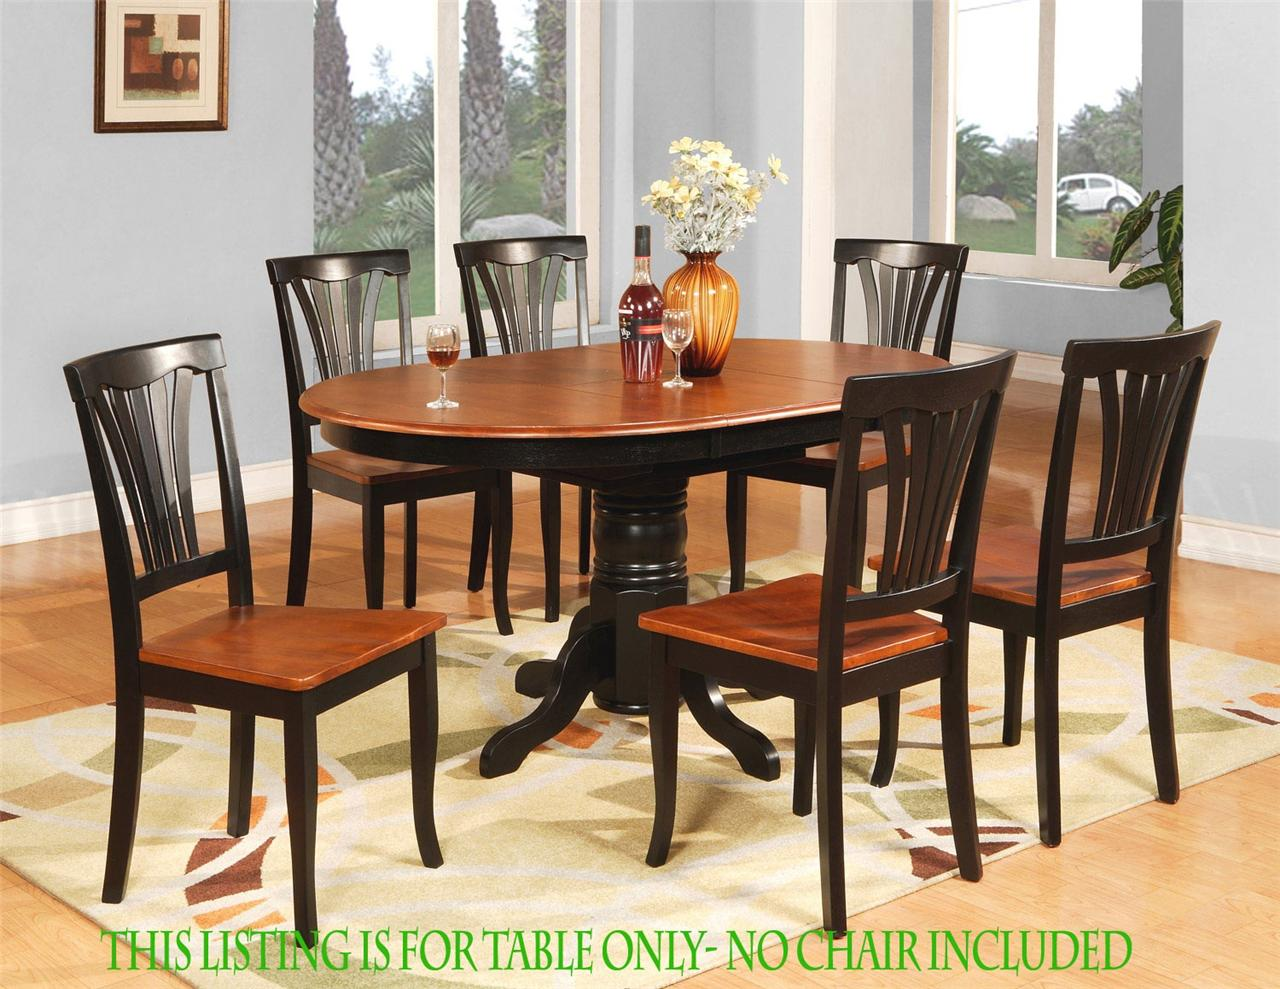 OVAL DINETTE KITCHEN DINING ROOM TABLE ONLY 42x 60 WITH